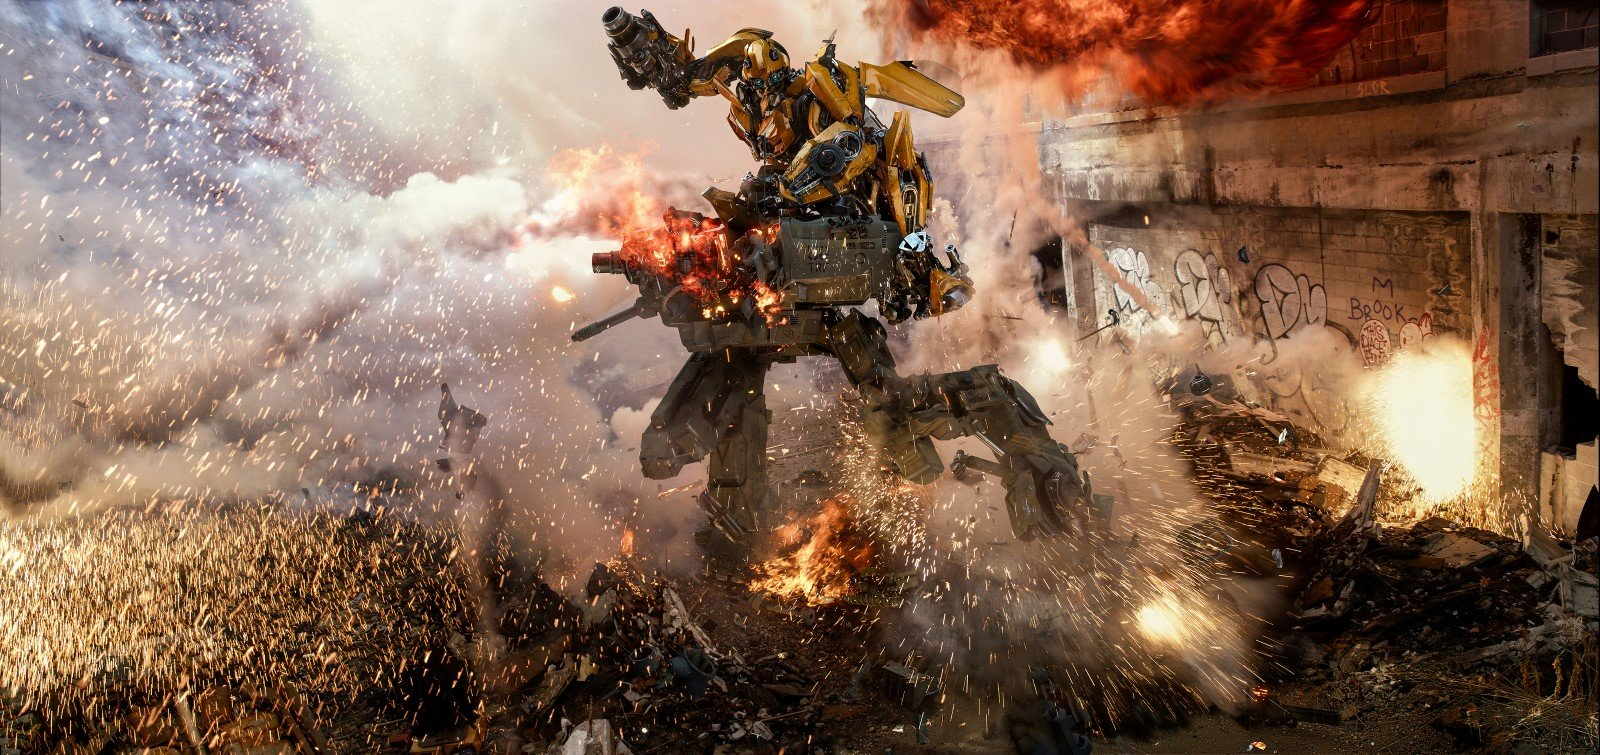 Bumblebee fights off a Sentinel in TRANSFORMERS: THE LAST KNIGHT, from Paramount Pictures.